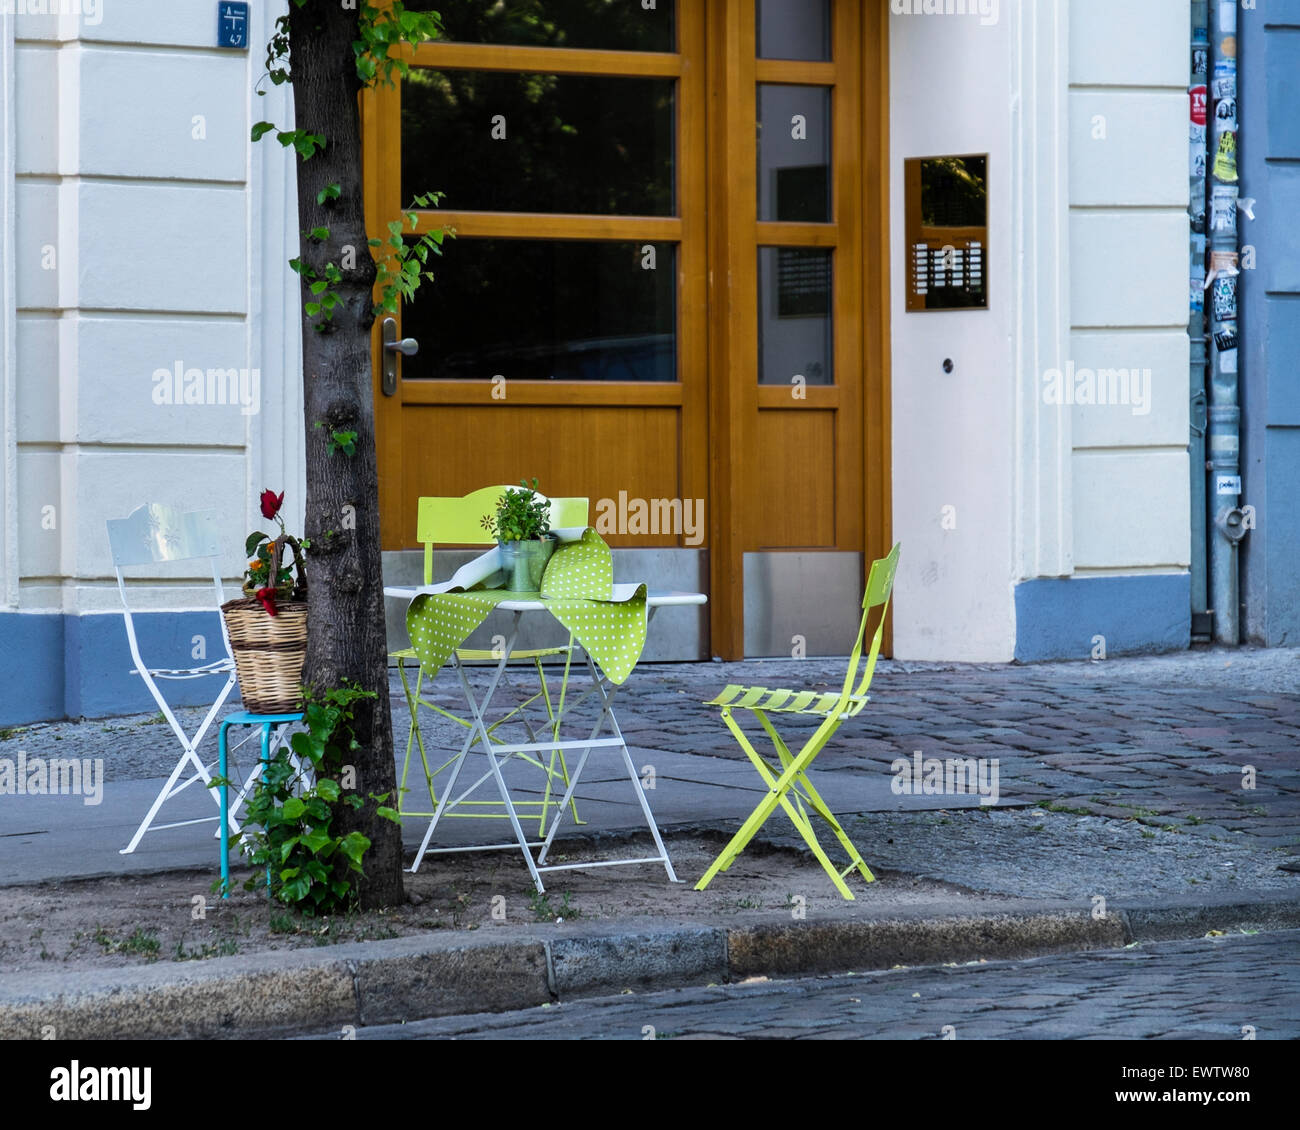 Pavement table prepared for alfresco dining in warm summer weather in Mitte, Berlin - Stock Image